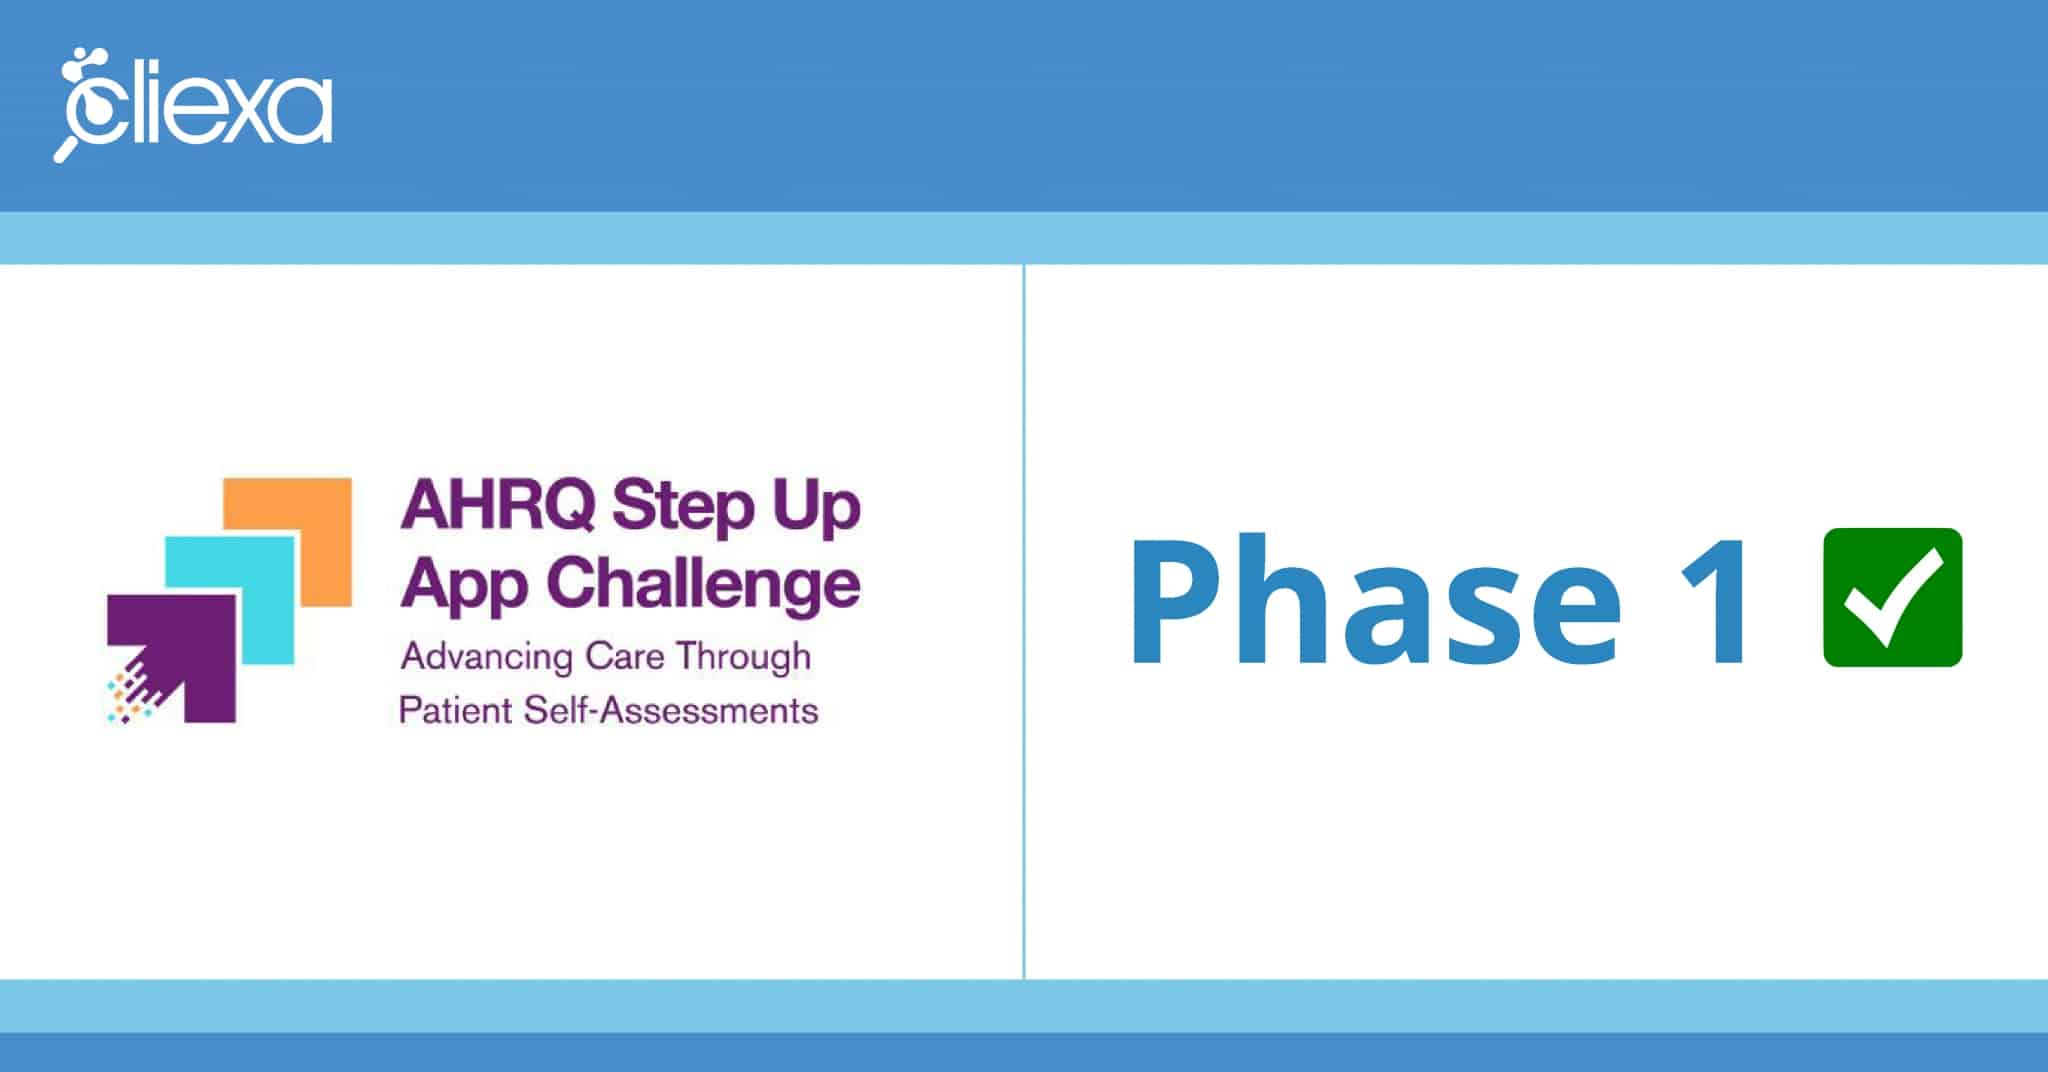 cliexa is a semifinalist in the AHRQ's Step-Up Challenge